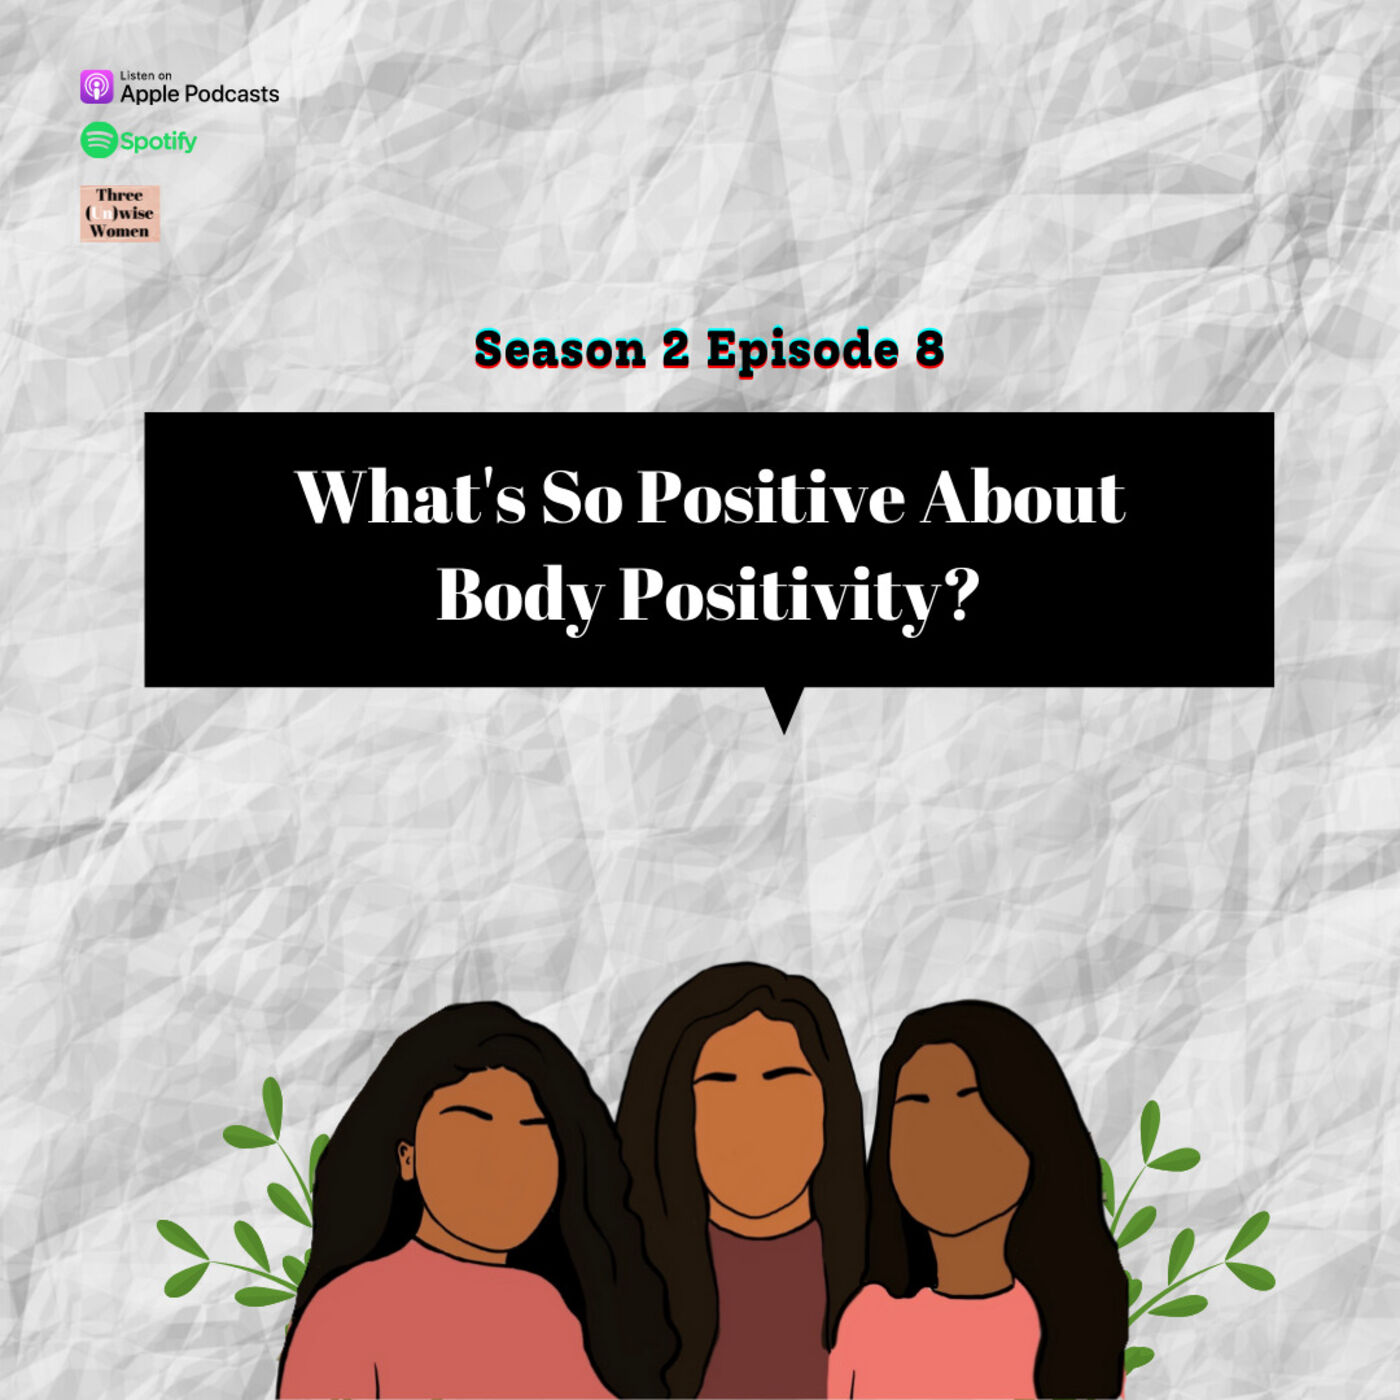 What's So Positive About Body Positivity?